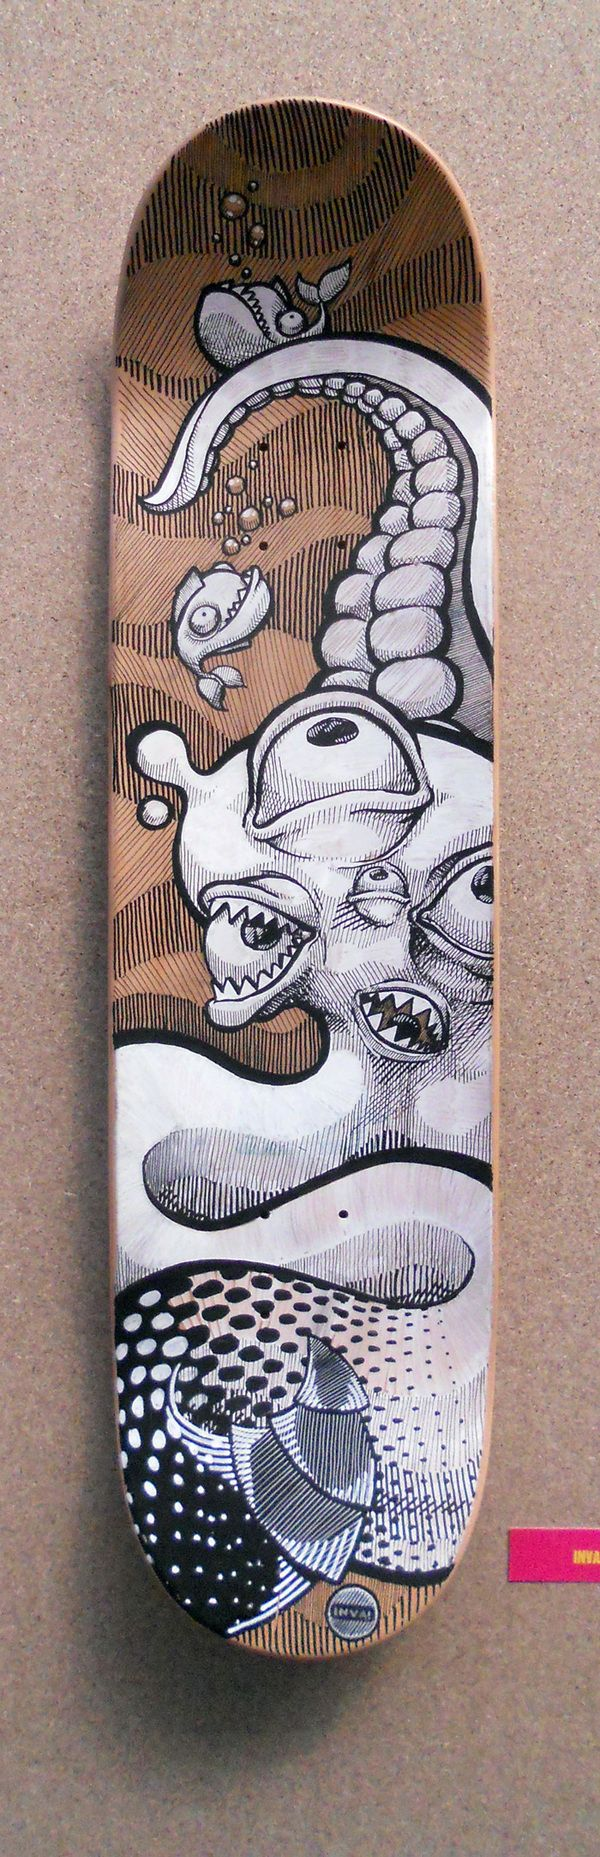 this is a skateboard illustration by inva i really enjoy the playful style they use in the composition it inspires me to want to come up with my own - Skateboard Design Ideas